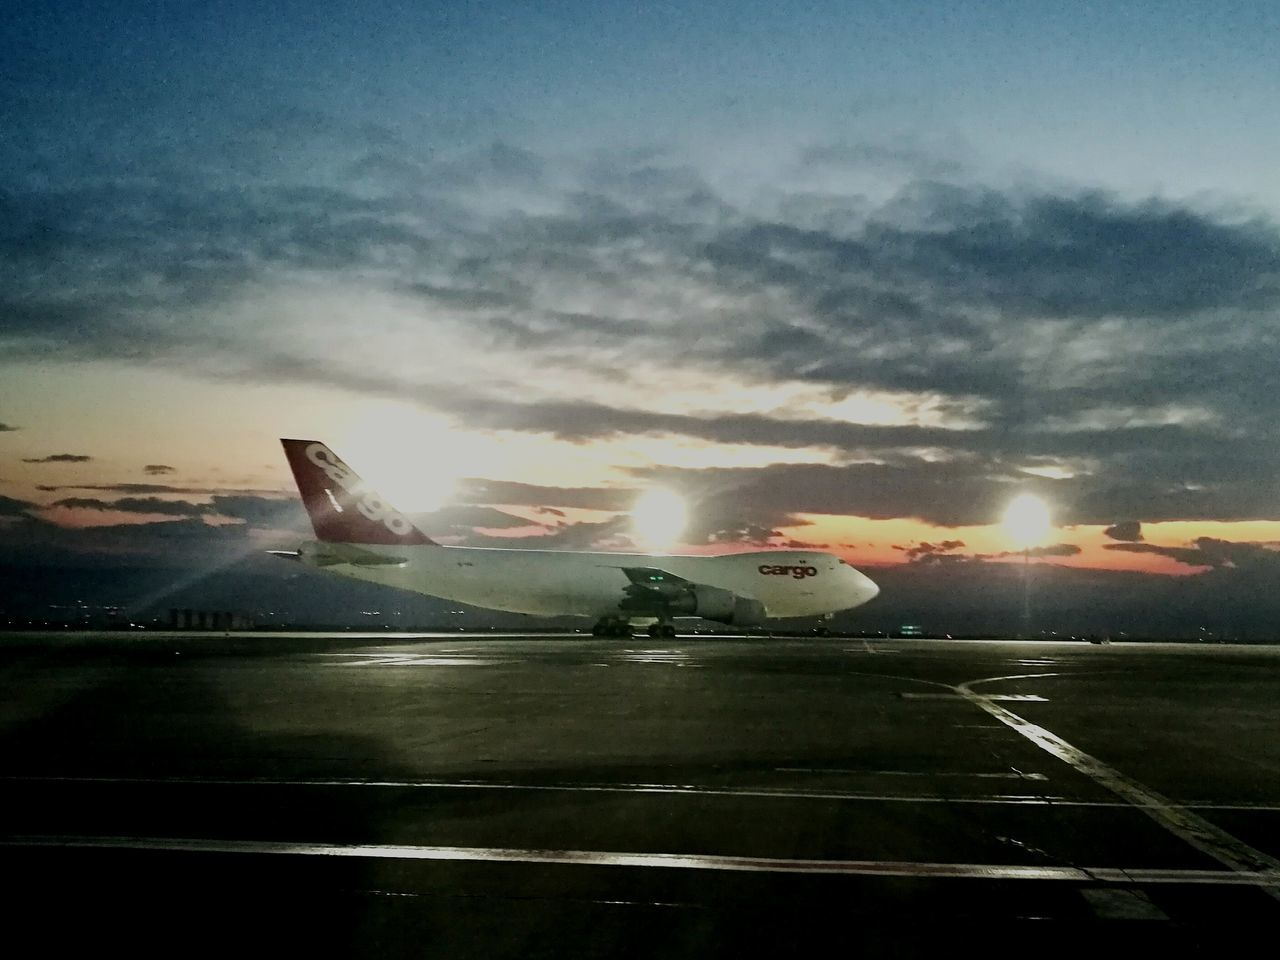 airplane, transportation, sky, sunset, air vehicle, cloud - sky, sun, airport, airport runway, mode of transport, no people, outdoors, nature, runway, flying, day, commercial airplane, airplane wing